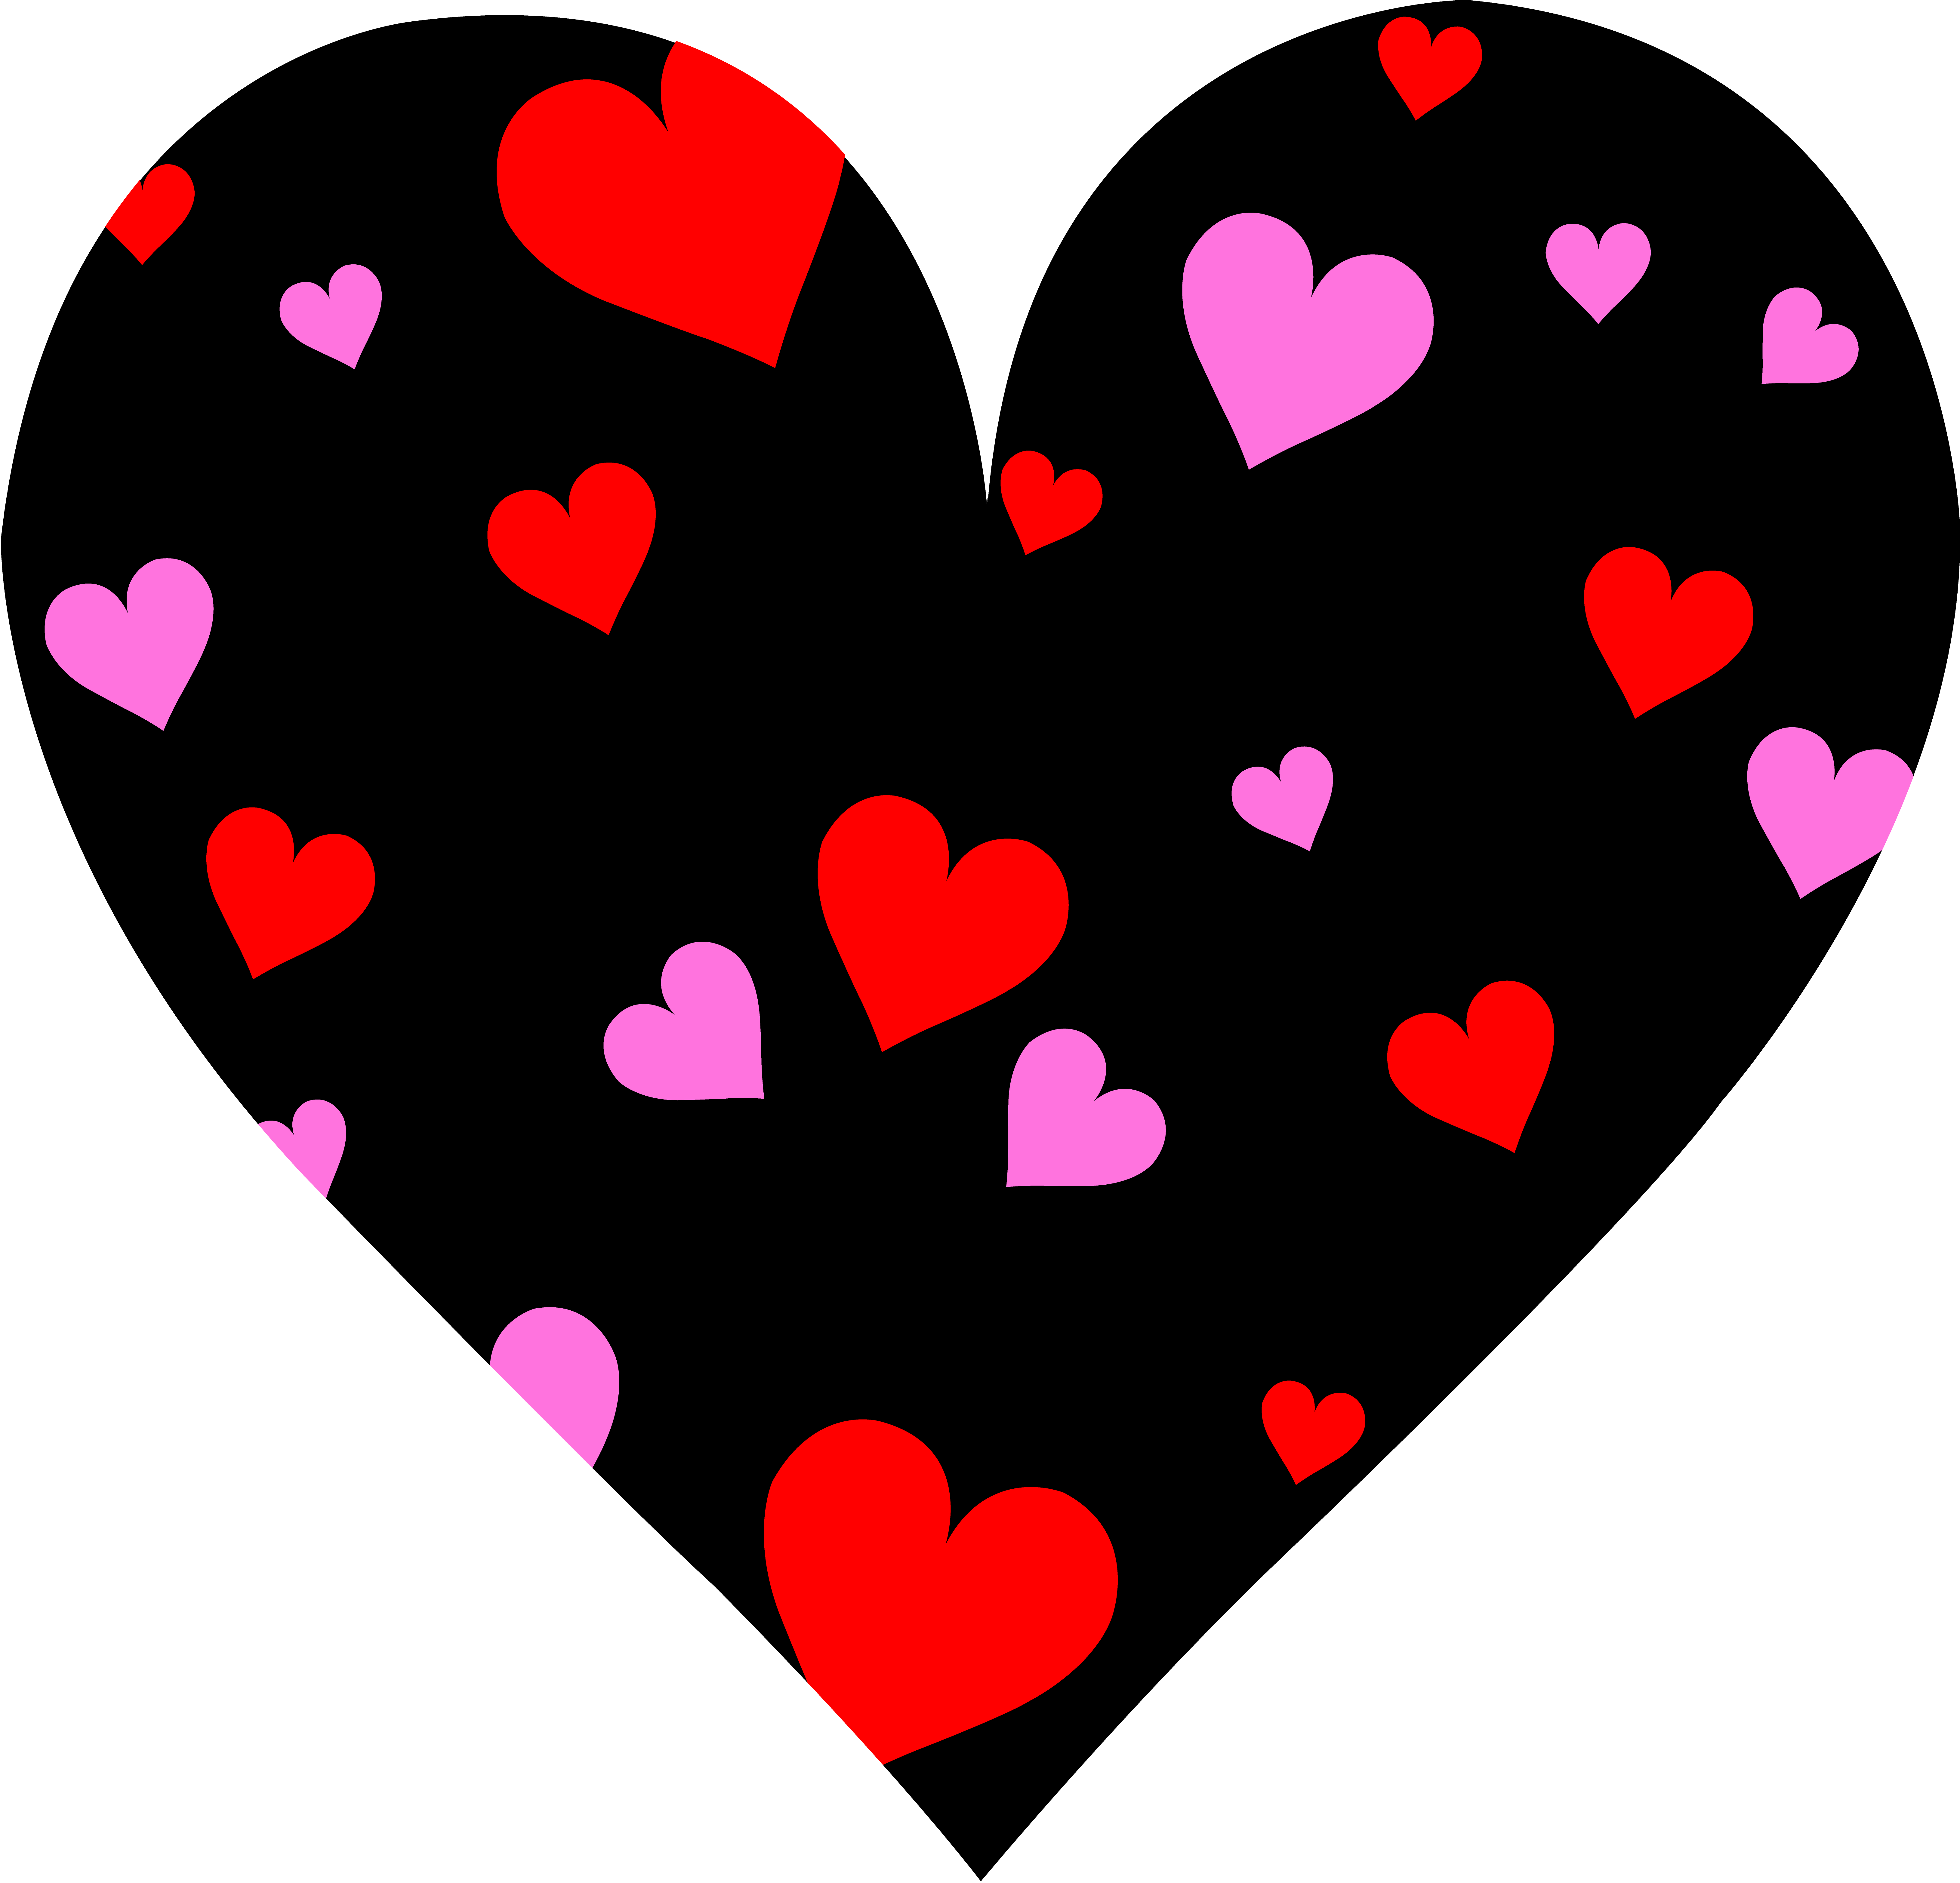 Cute Patterned Valentines Day Heart Free clipart free image.